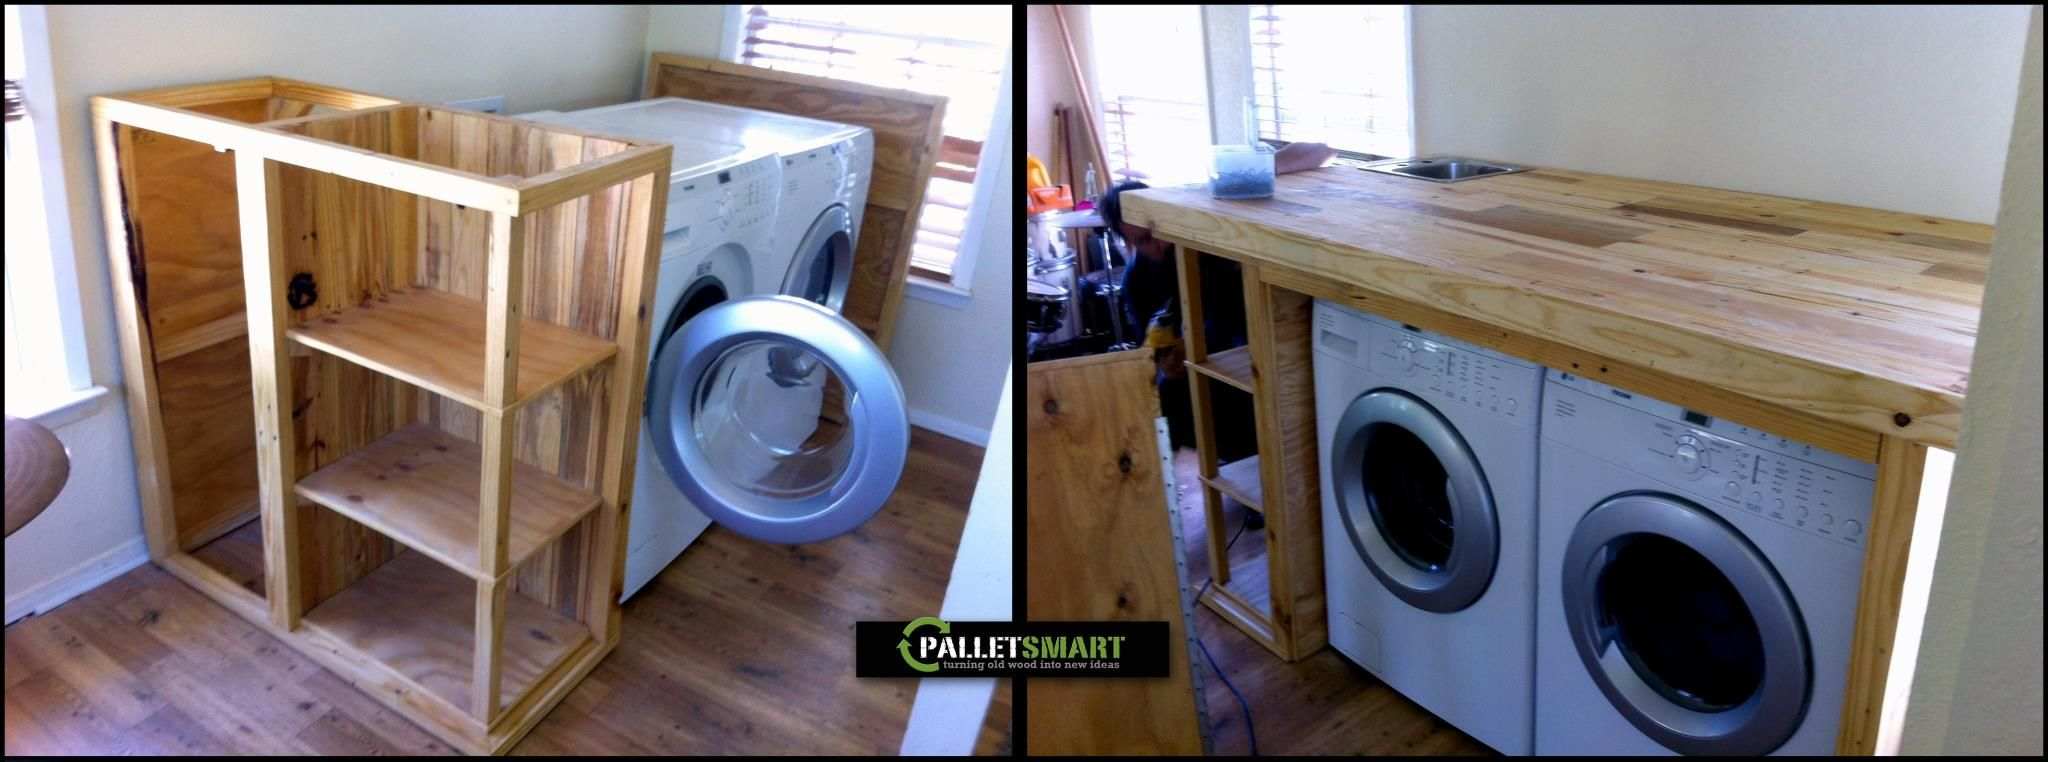 Washer and Dryer built in enclosure, made from recycled wood pallets